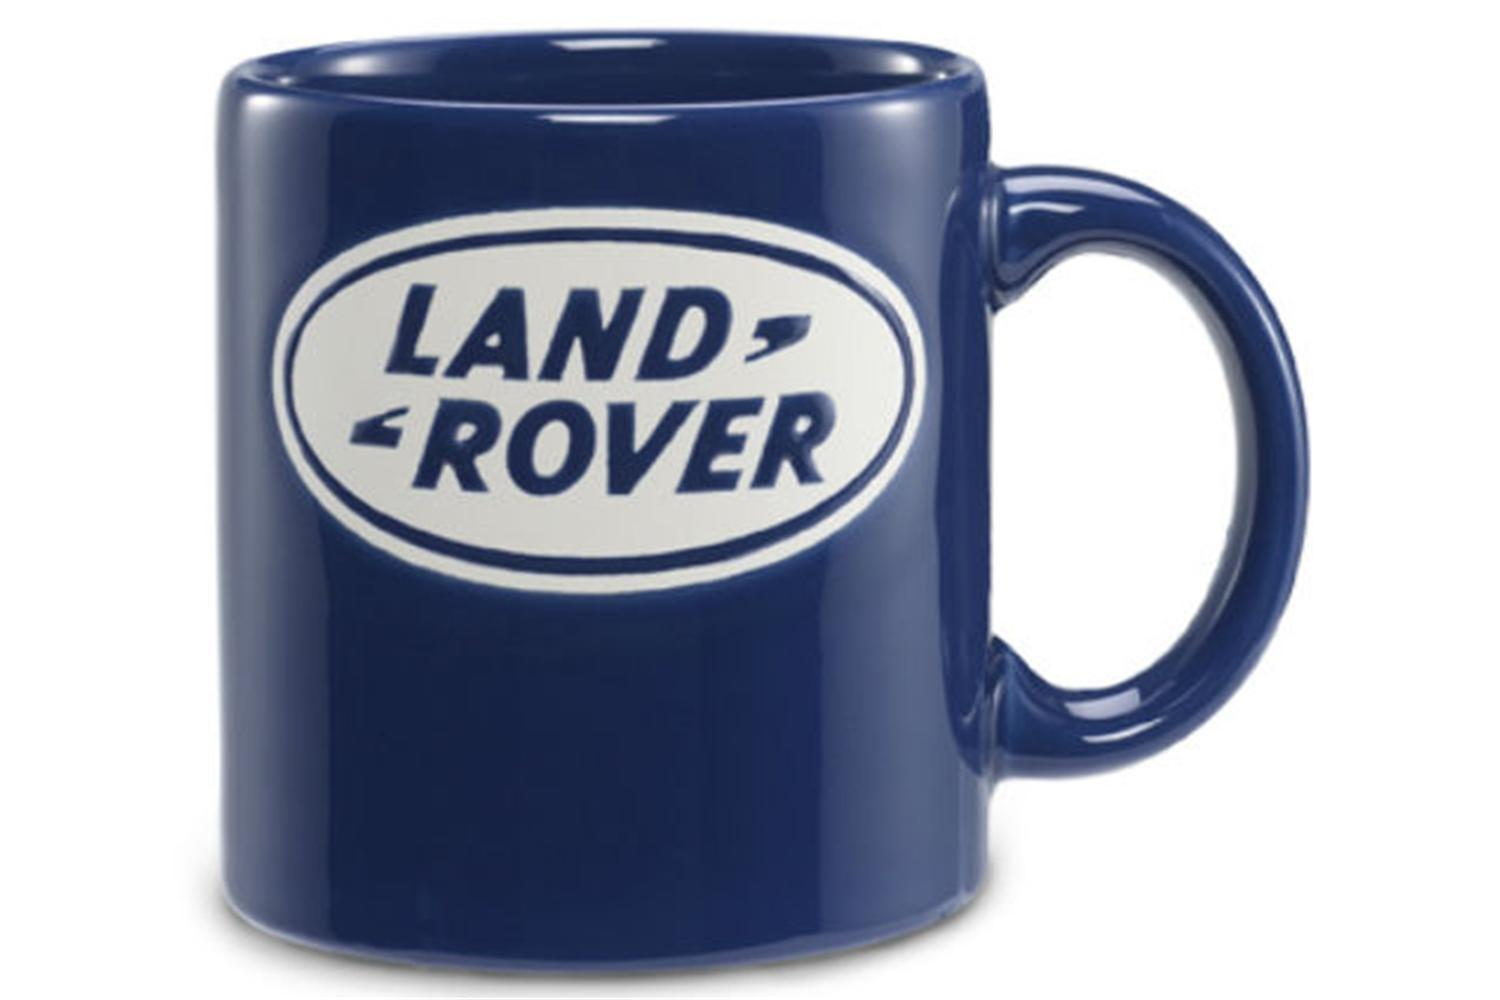 The best Land Rover gift ideas